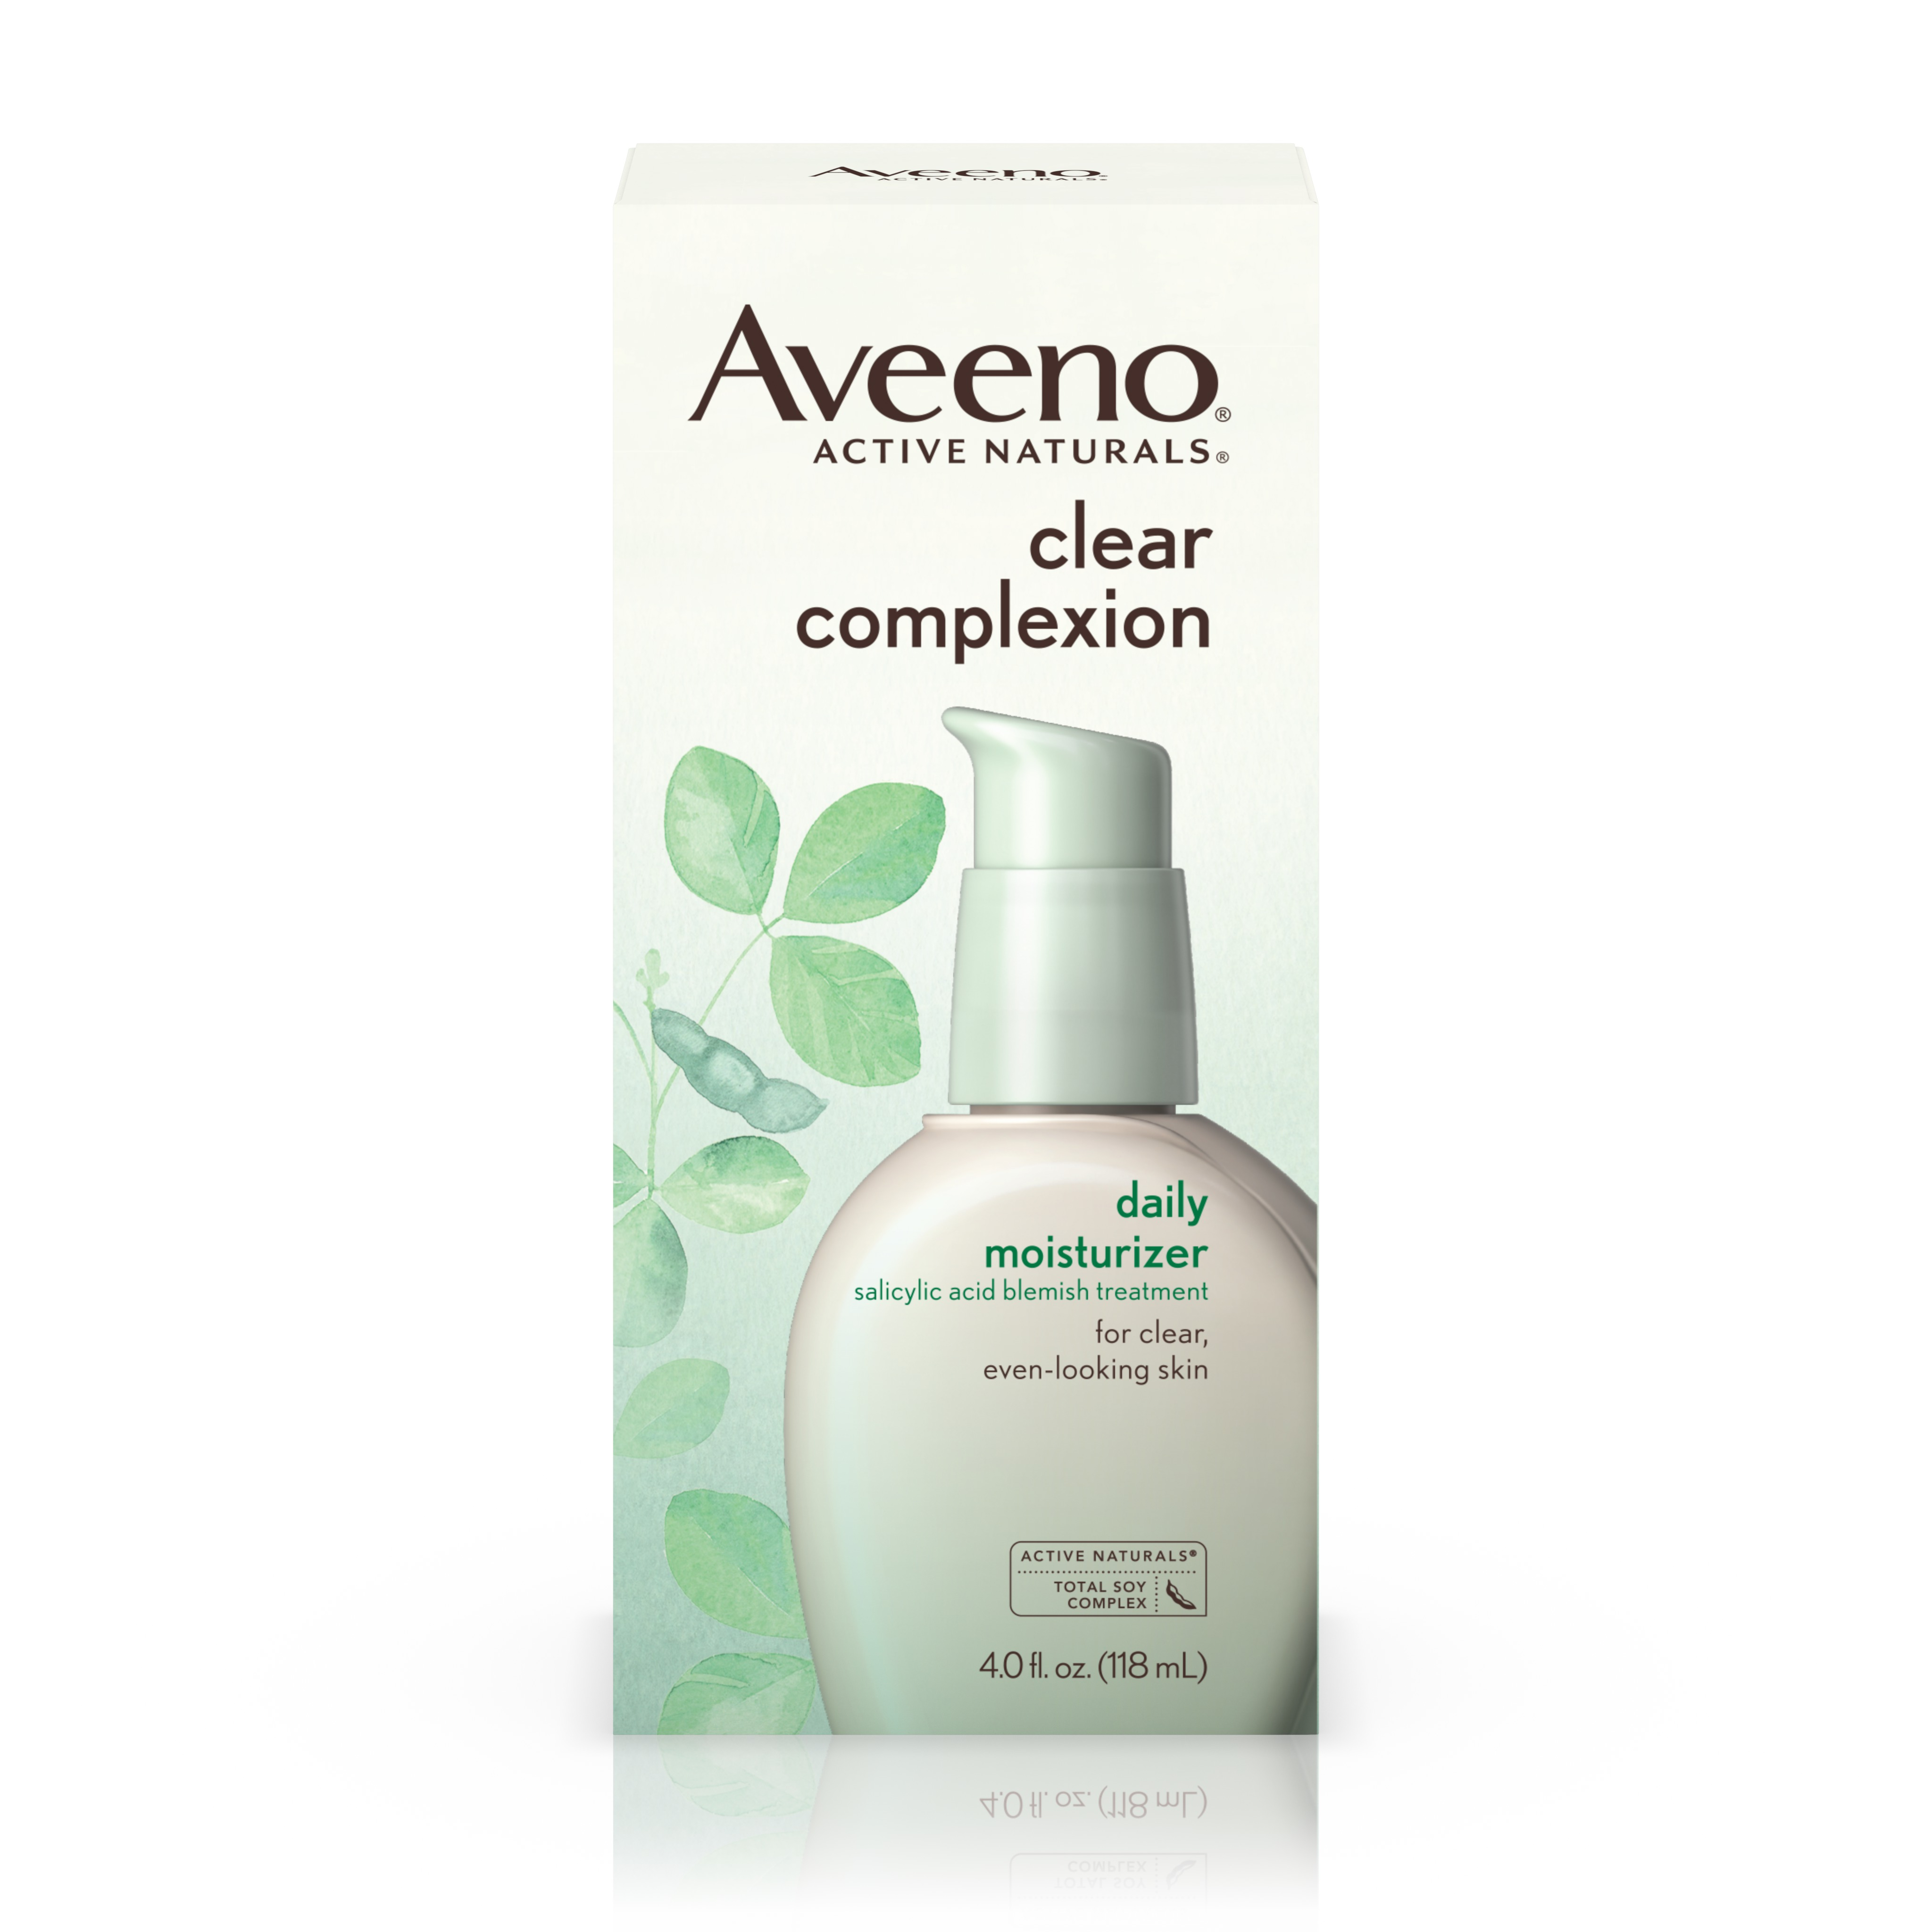 Aveeno Clear Complexion Blemish Treatment Daily Moisturizer, 4 Oz - Walmart.com